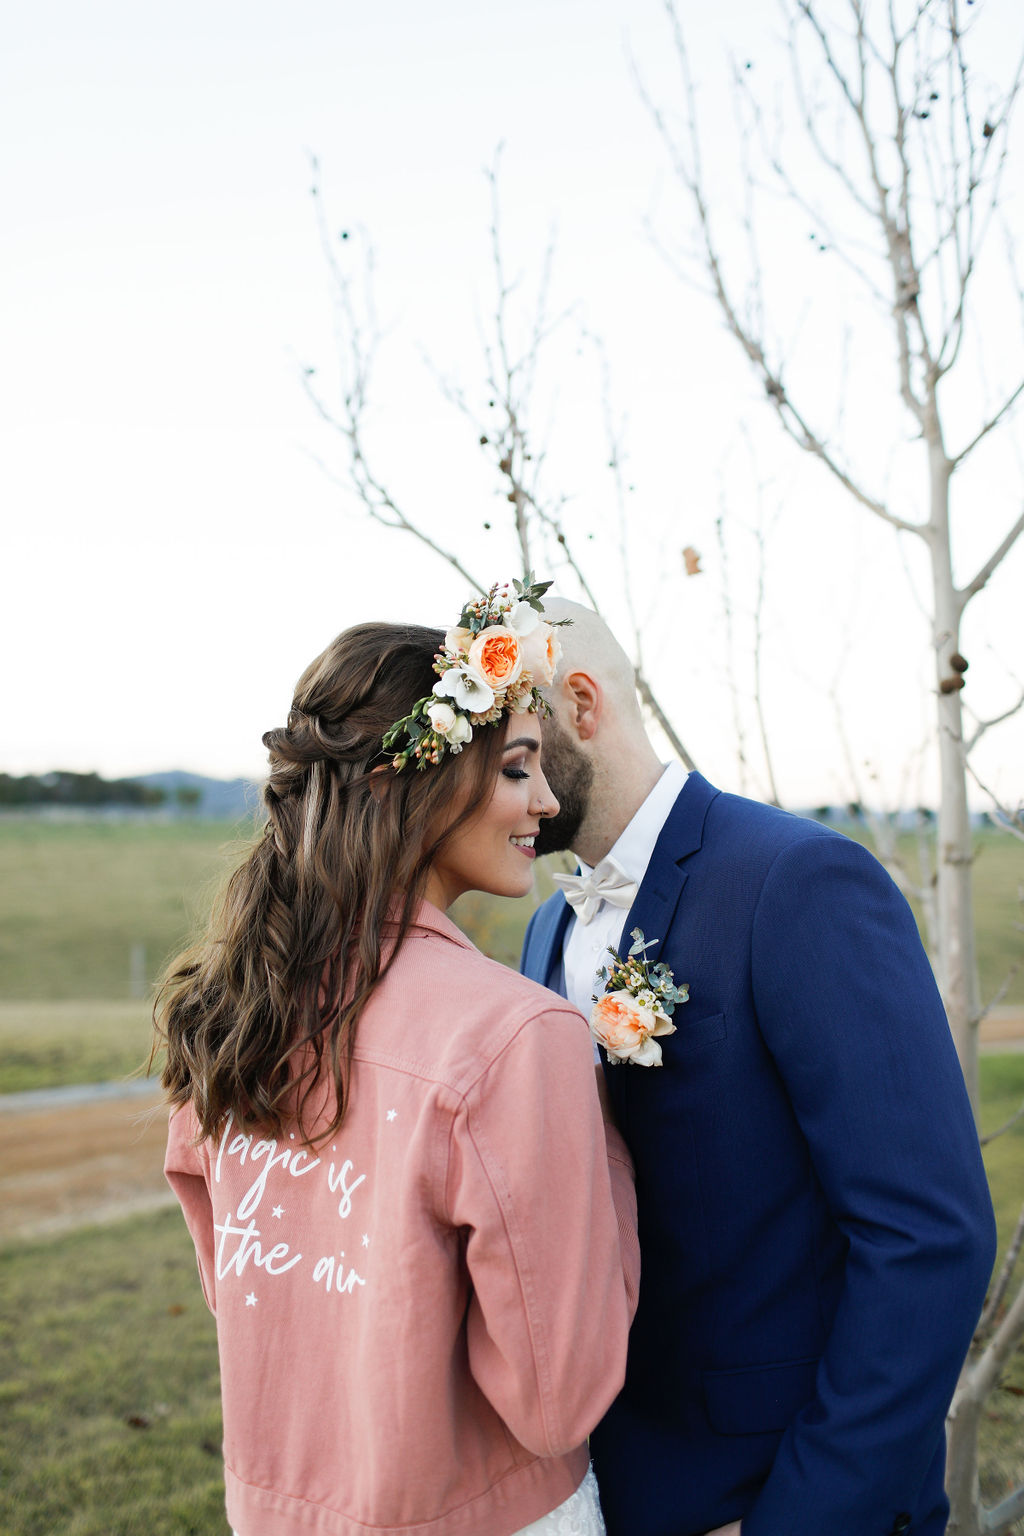 wild flower photography newcastle bohemian wedding ideas florals bridal gown groom attire australian designer